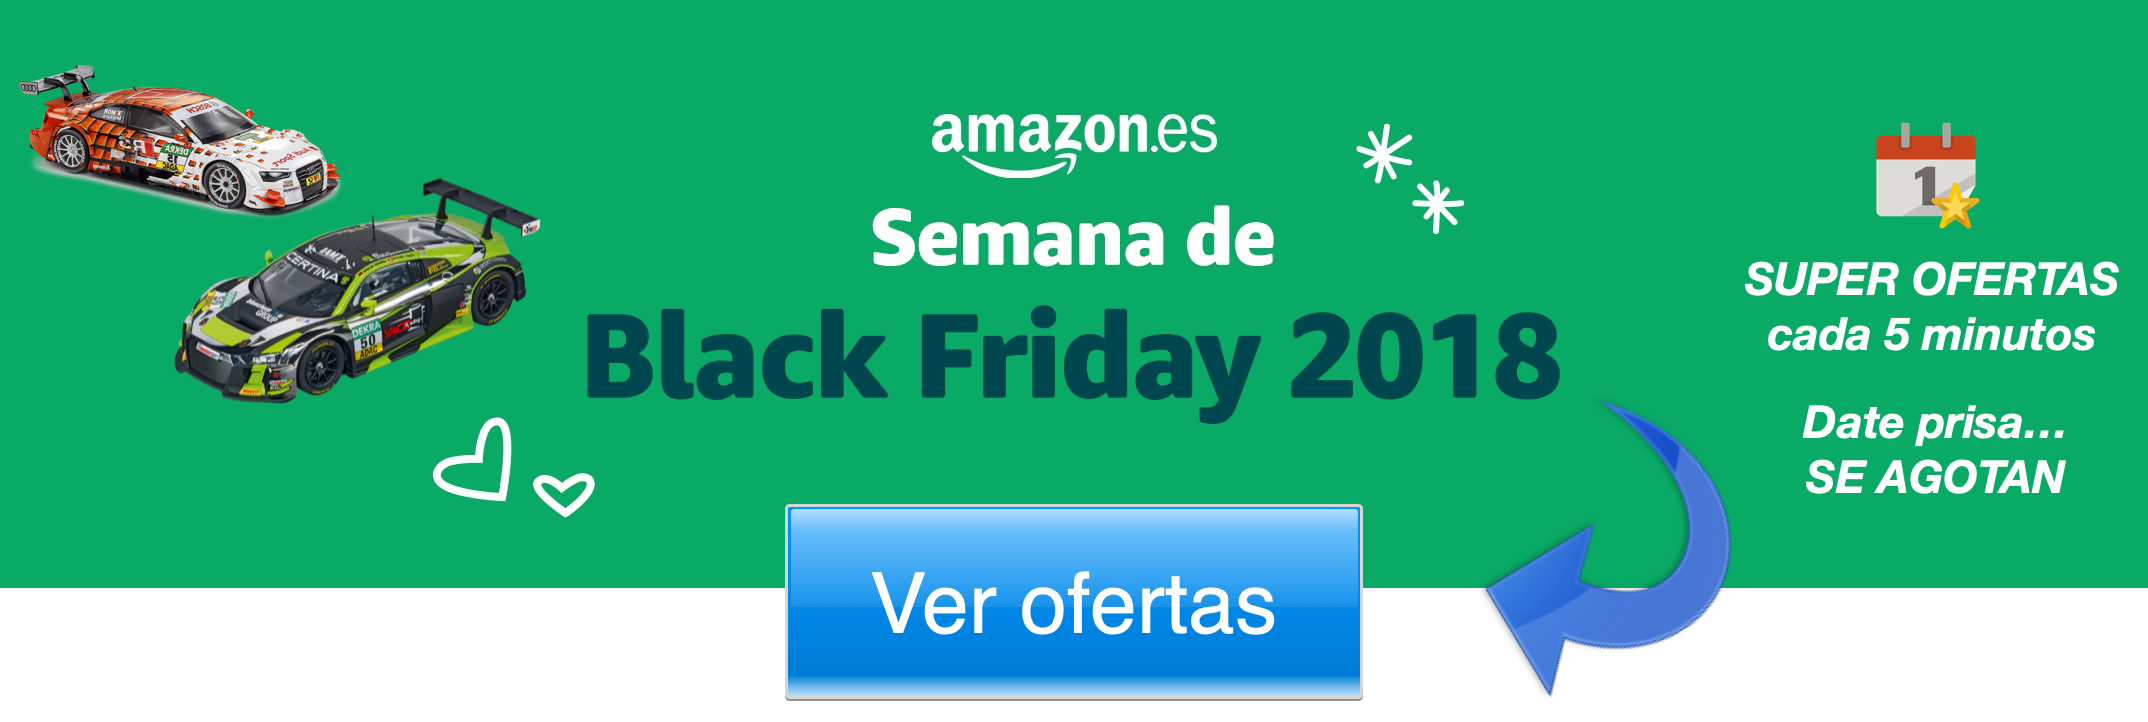 ofertas slots amazon black friday 2018